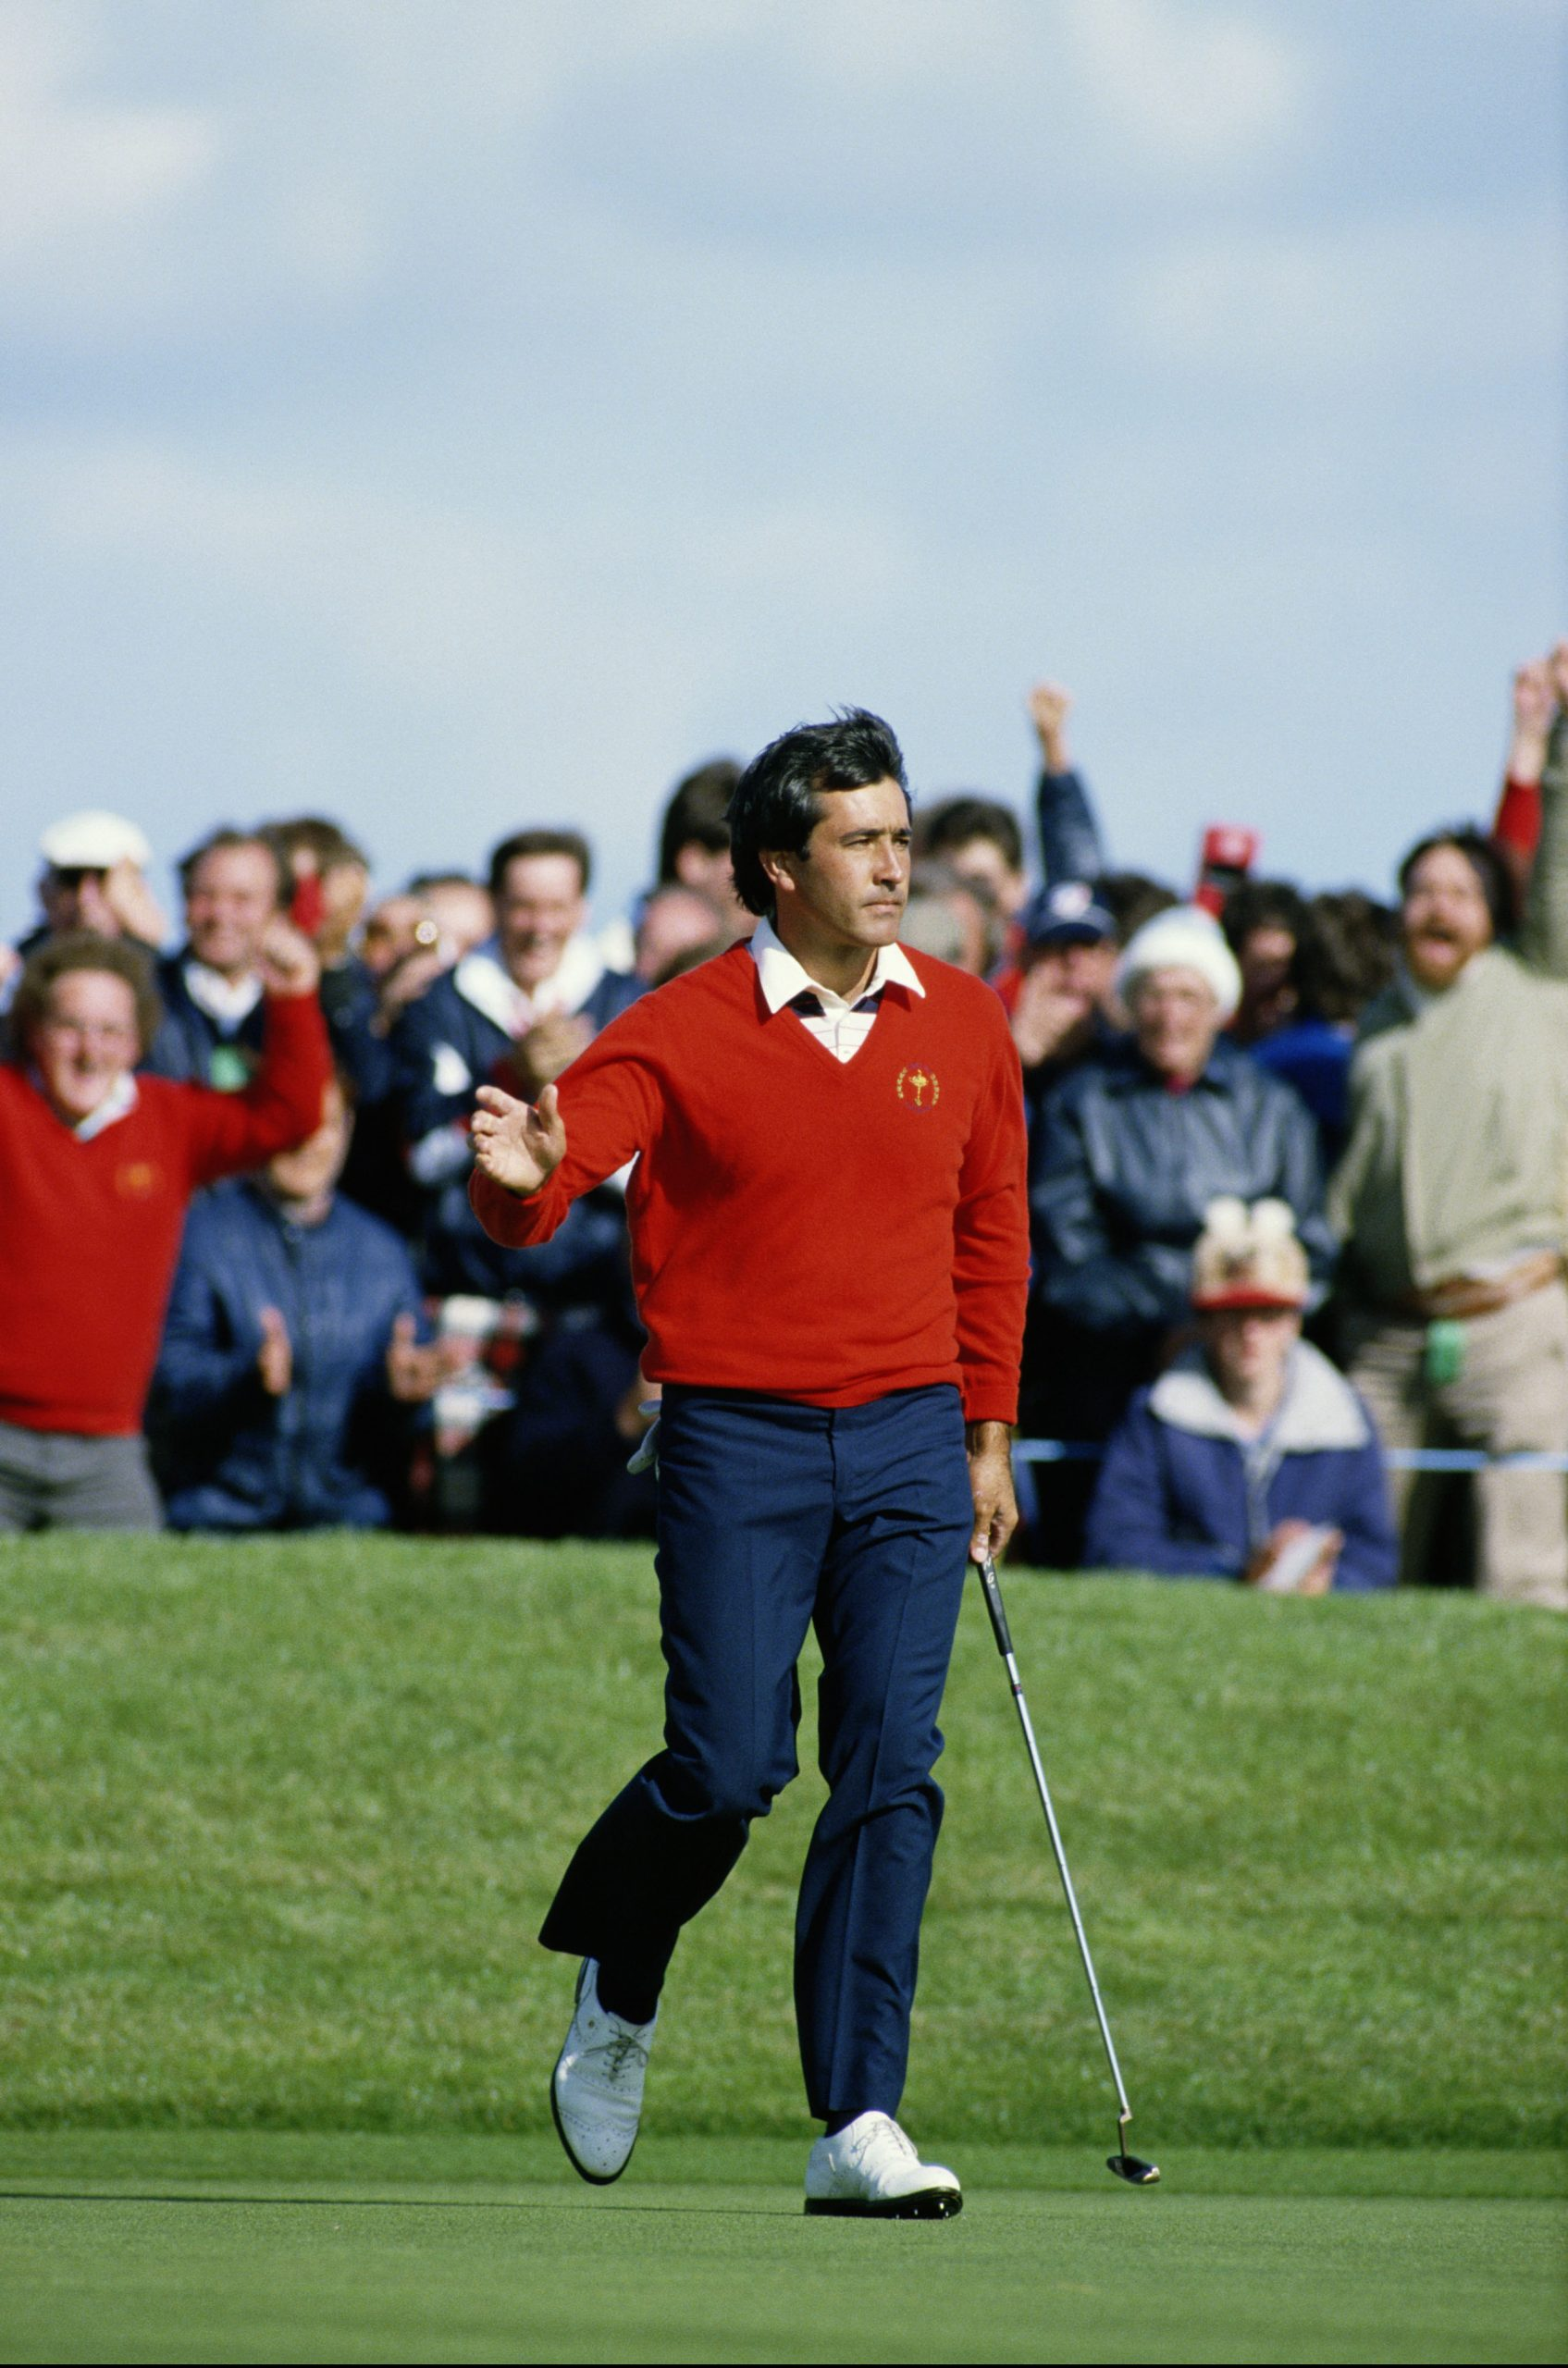 Spanish golfer Seve Ballesteros on the 17th green during a Ryder Cup match at The Belfry, Warwickshire, 15th September 1985.